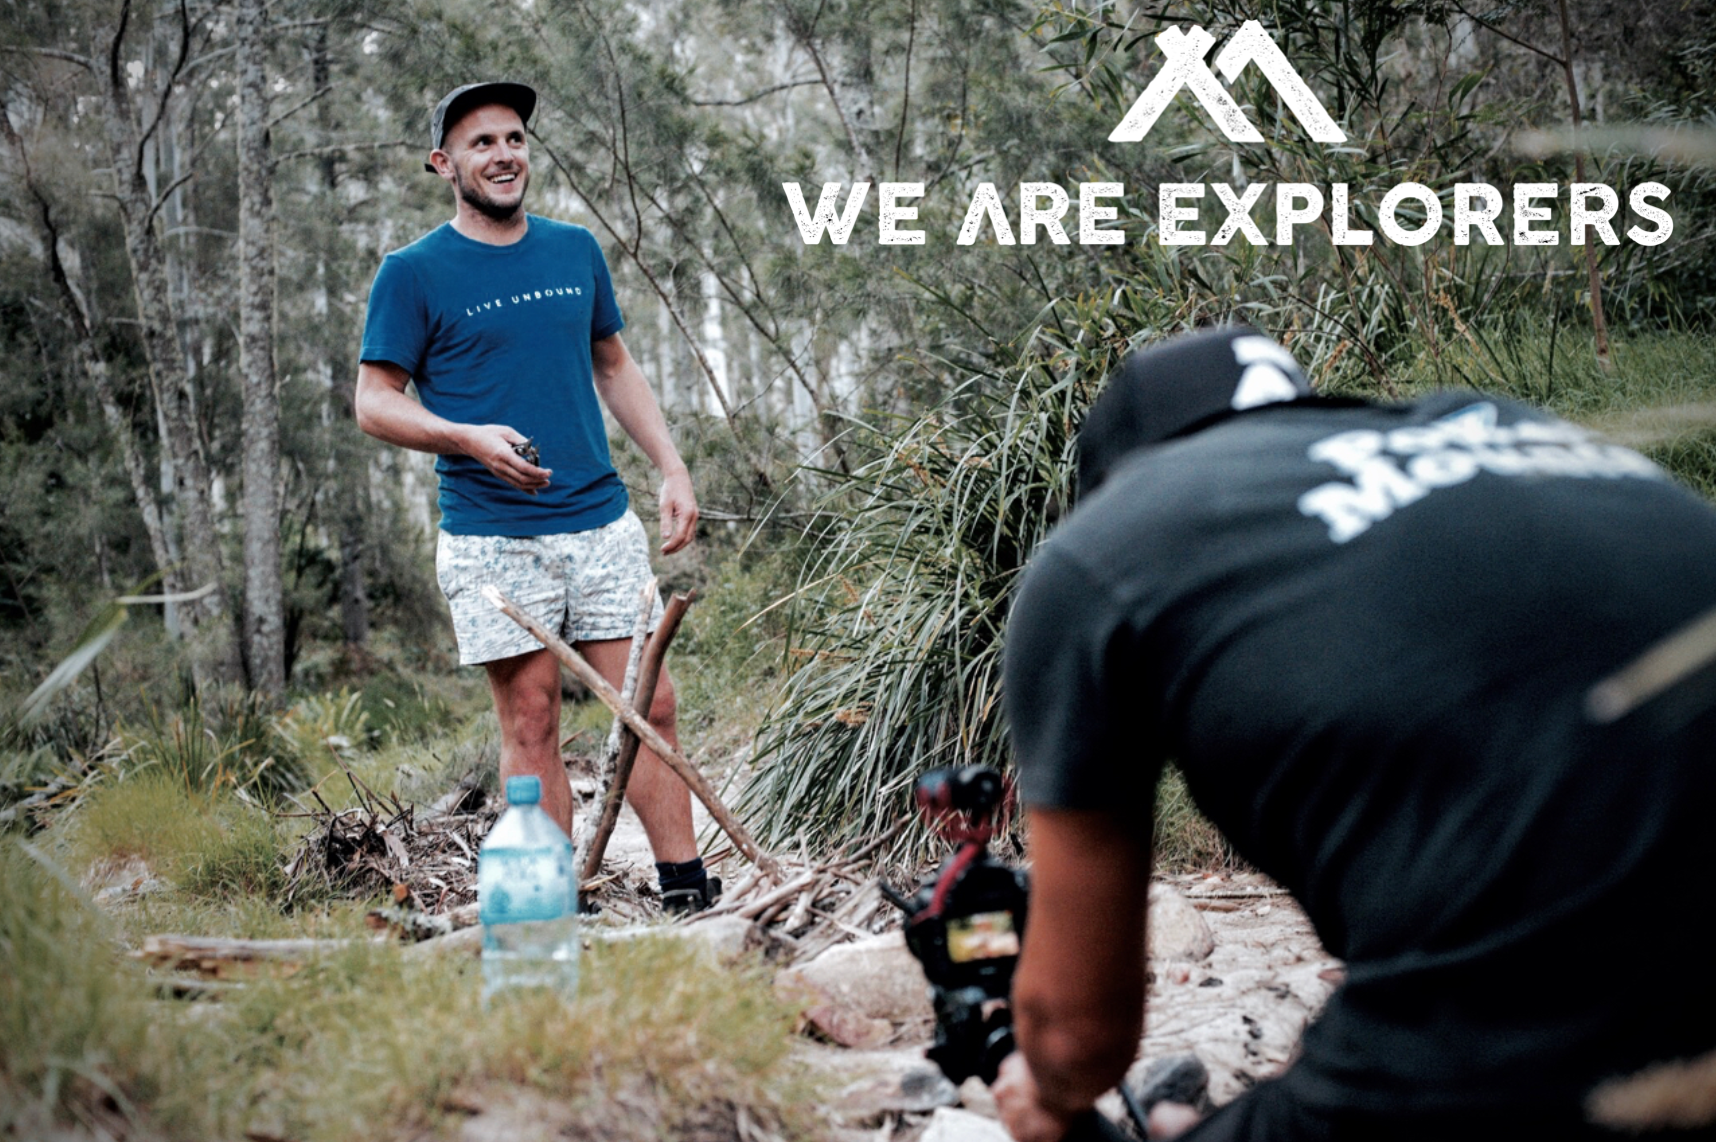 Henry Brydon - Founder |  We Are Explorers -  Ollie was nothing short of an absolute pleasure to work with from the very start.Not only does he have creativity surging through his veins, but he serves it up with professionalism and a level of dependency that is incredibly reassuring.We worked with a major tourism board to create a series of assets with a crew of influencers. Ollie led the crew on location and ensured what we delivered completely blew the client away.I wouldn't hesitate to work with Ollie again.